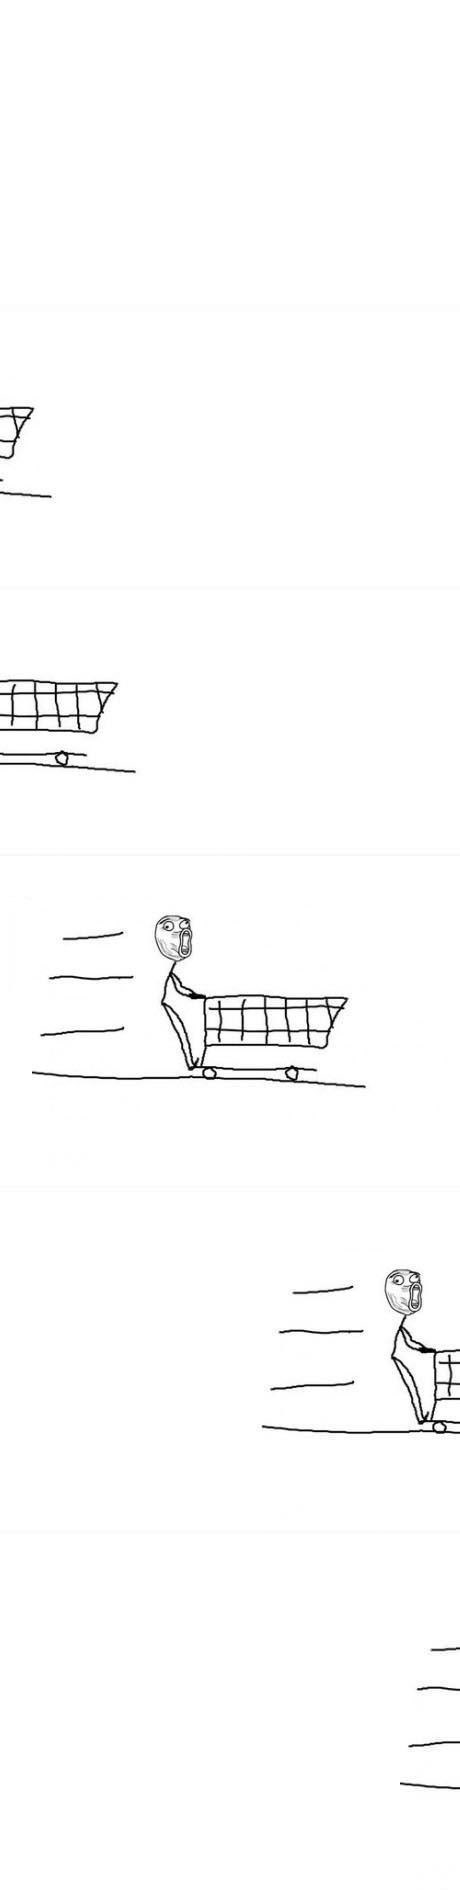 lol shopping carts - 8020688896